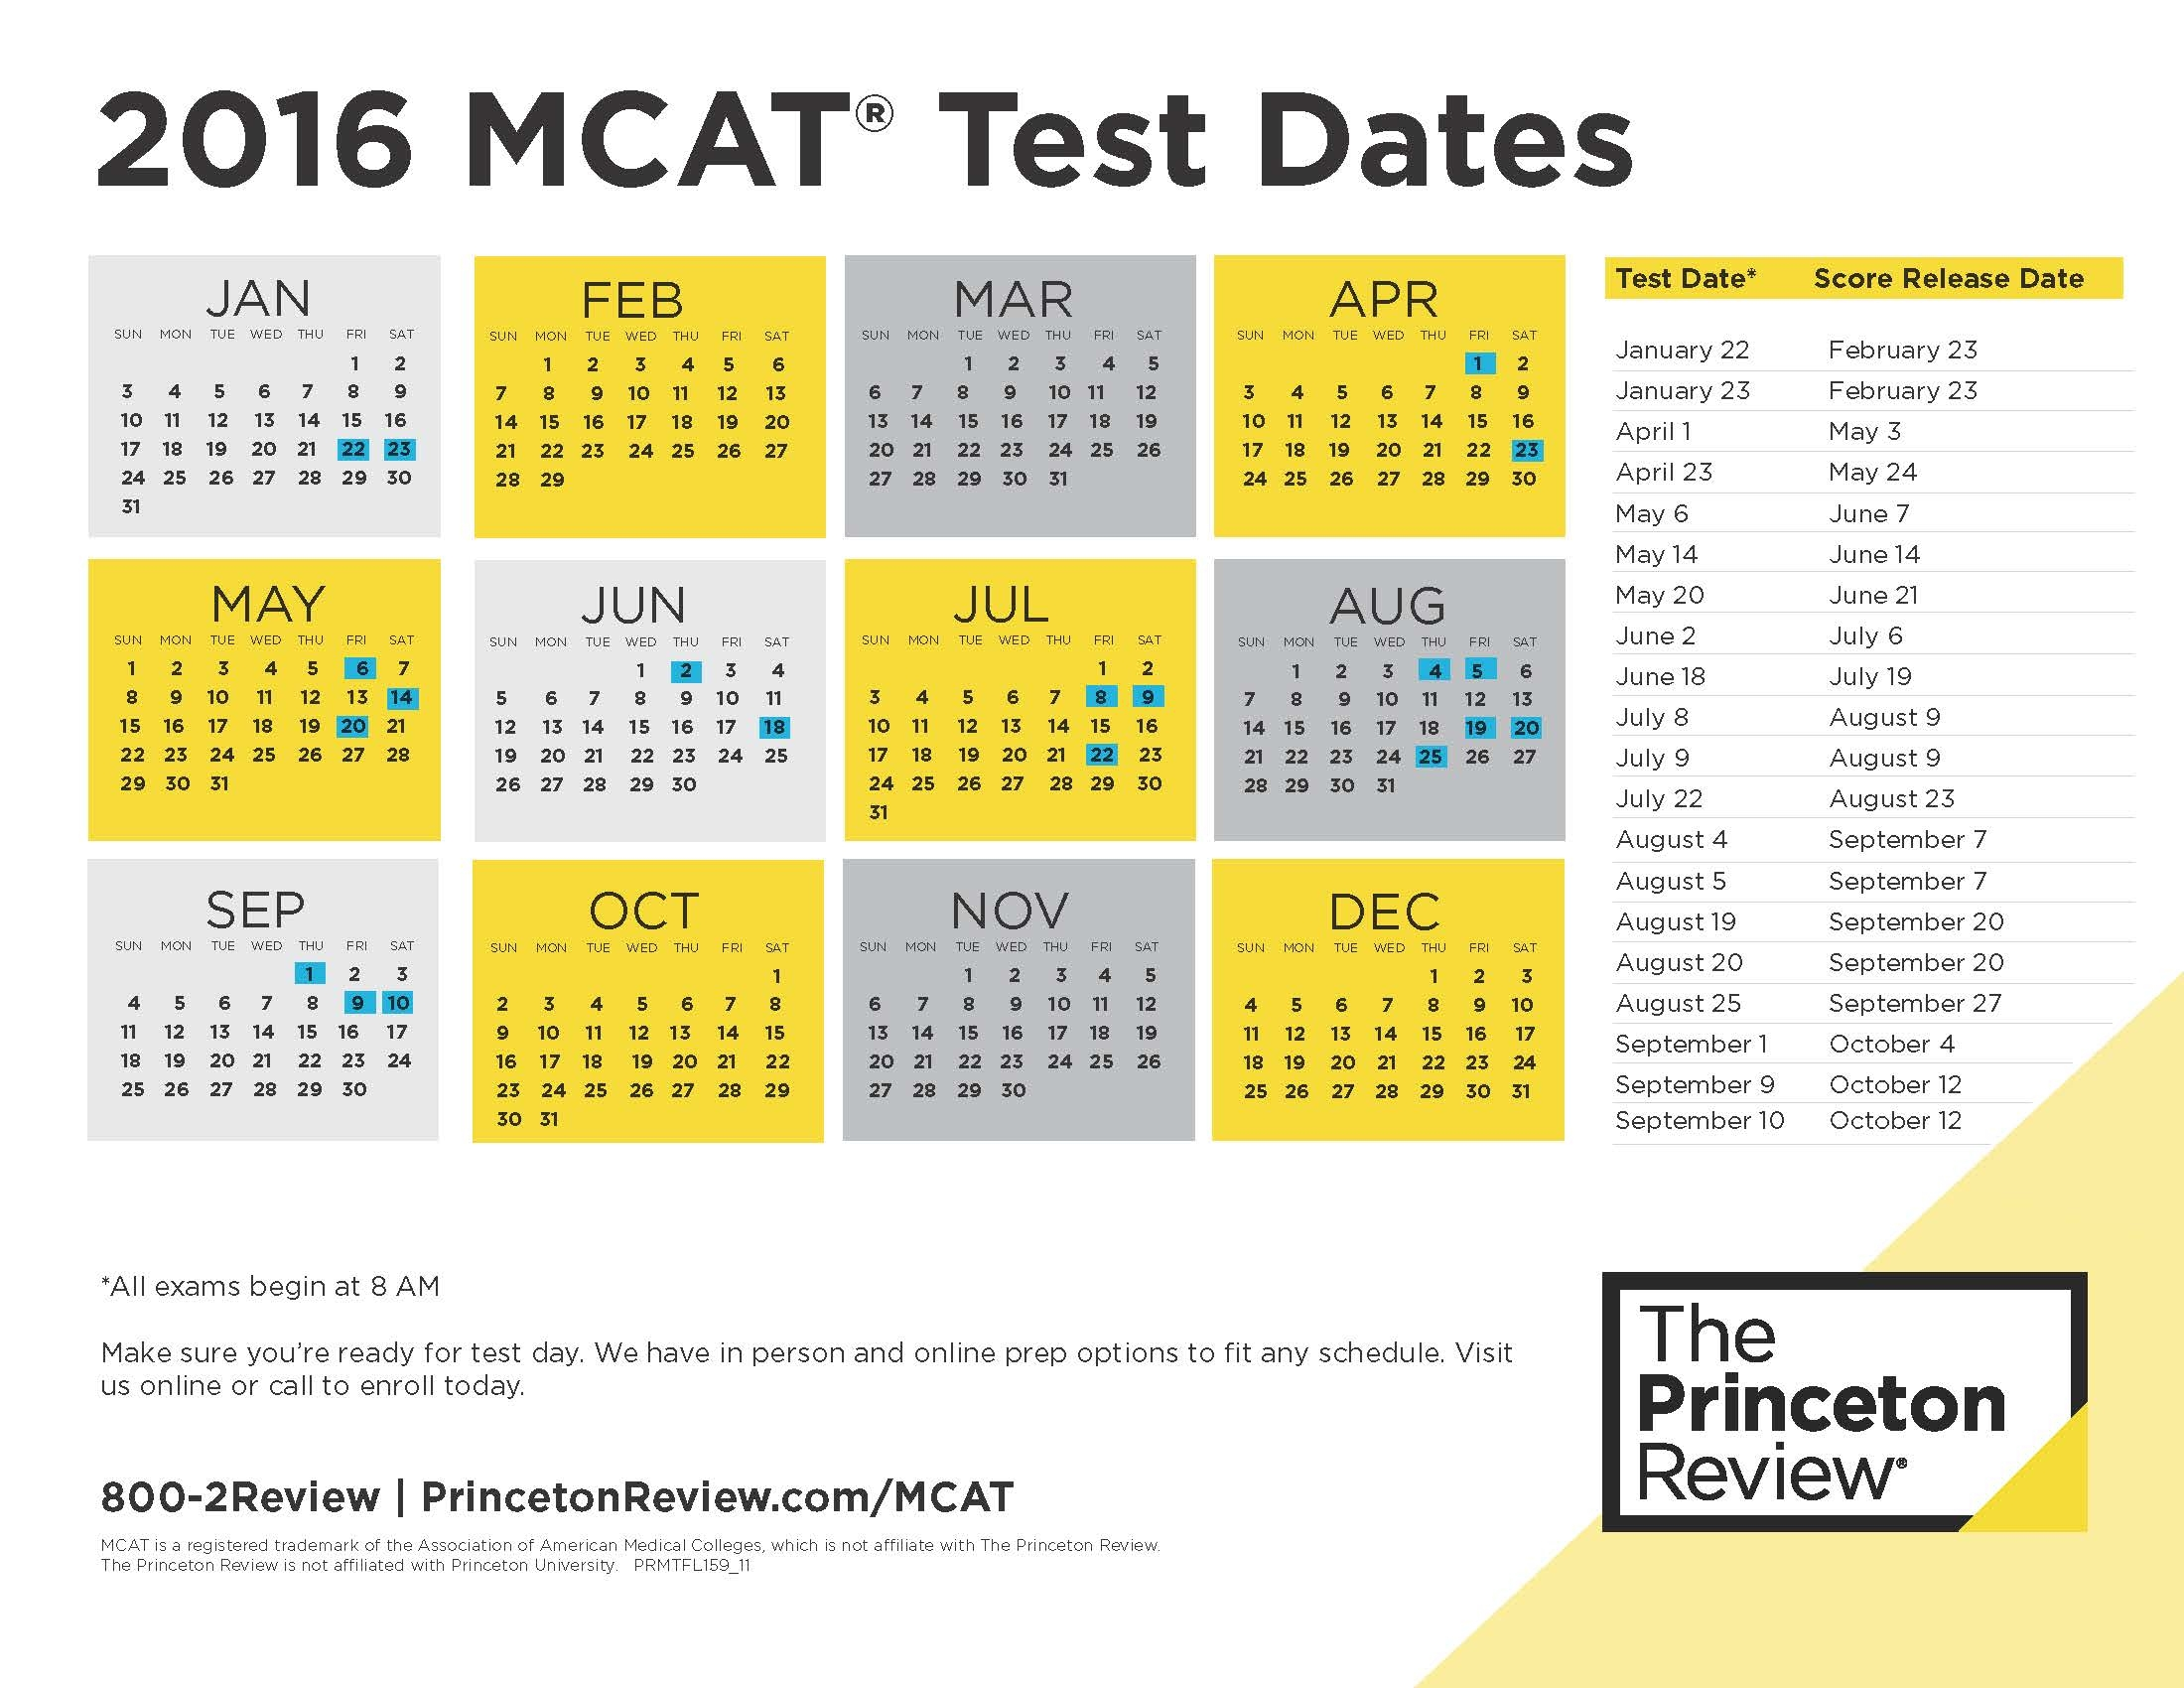 Woodsworth College Students Association Save On Mcat Courses With